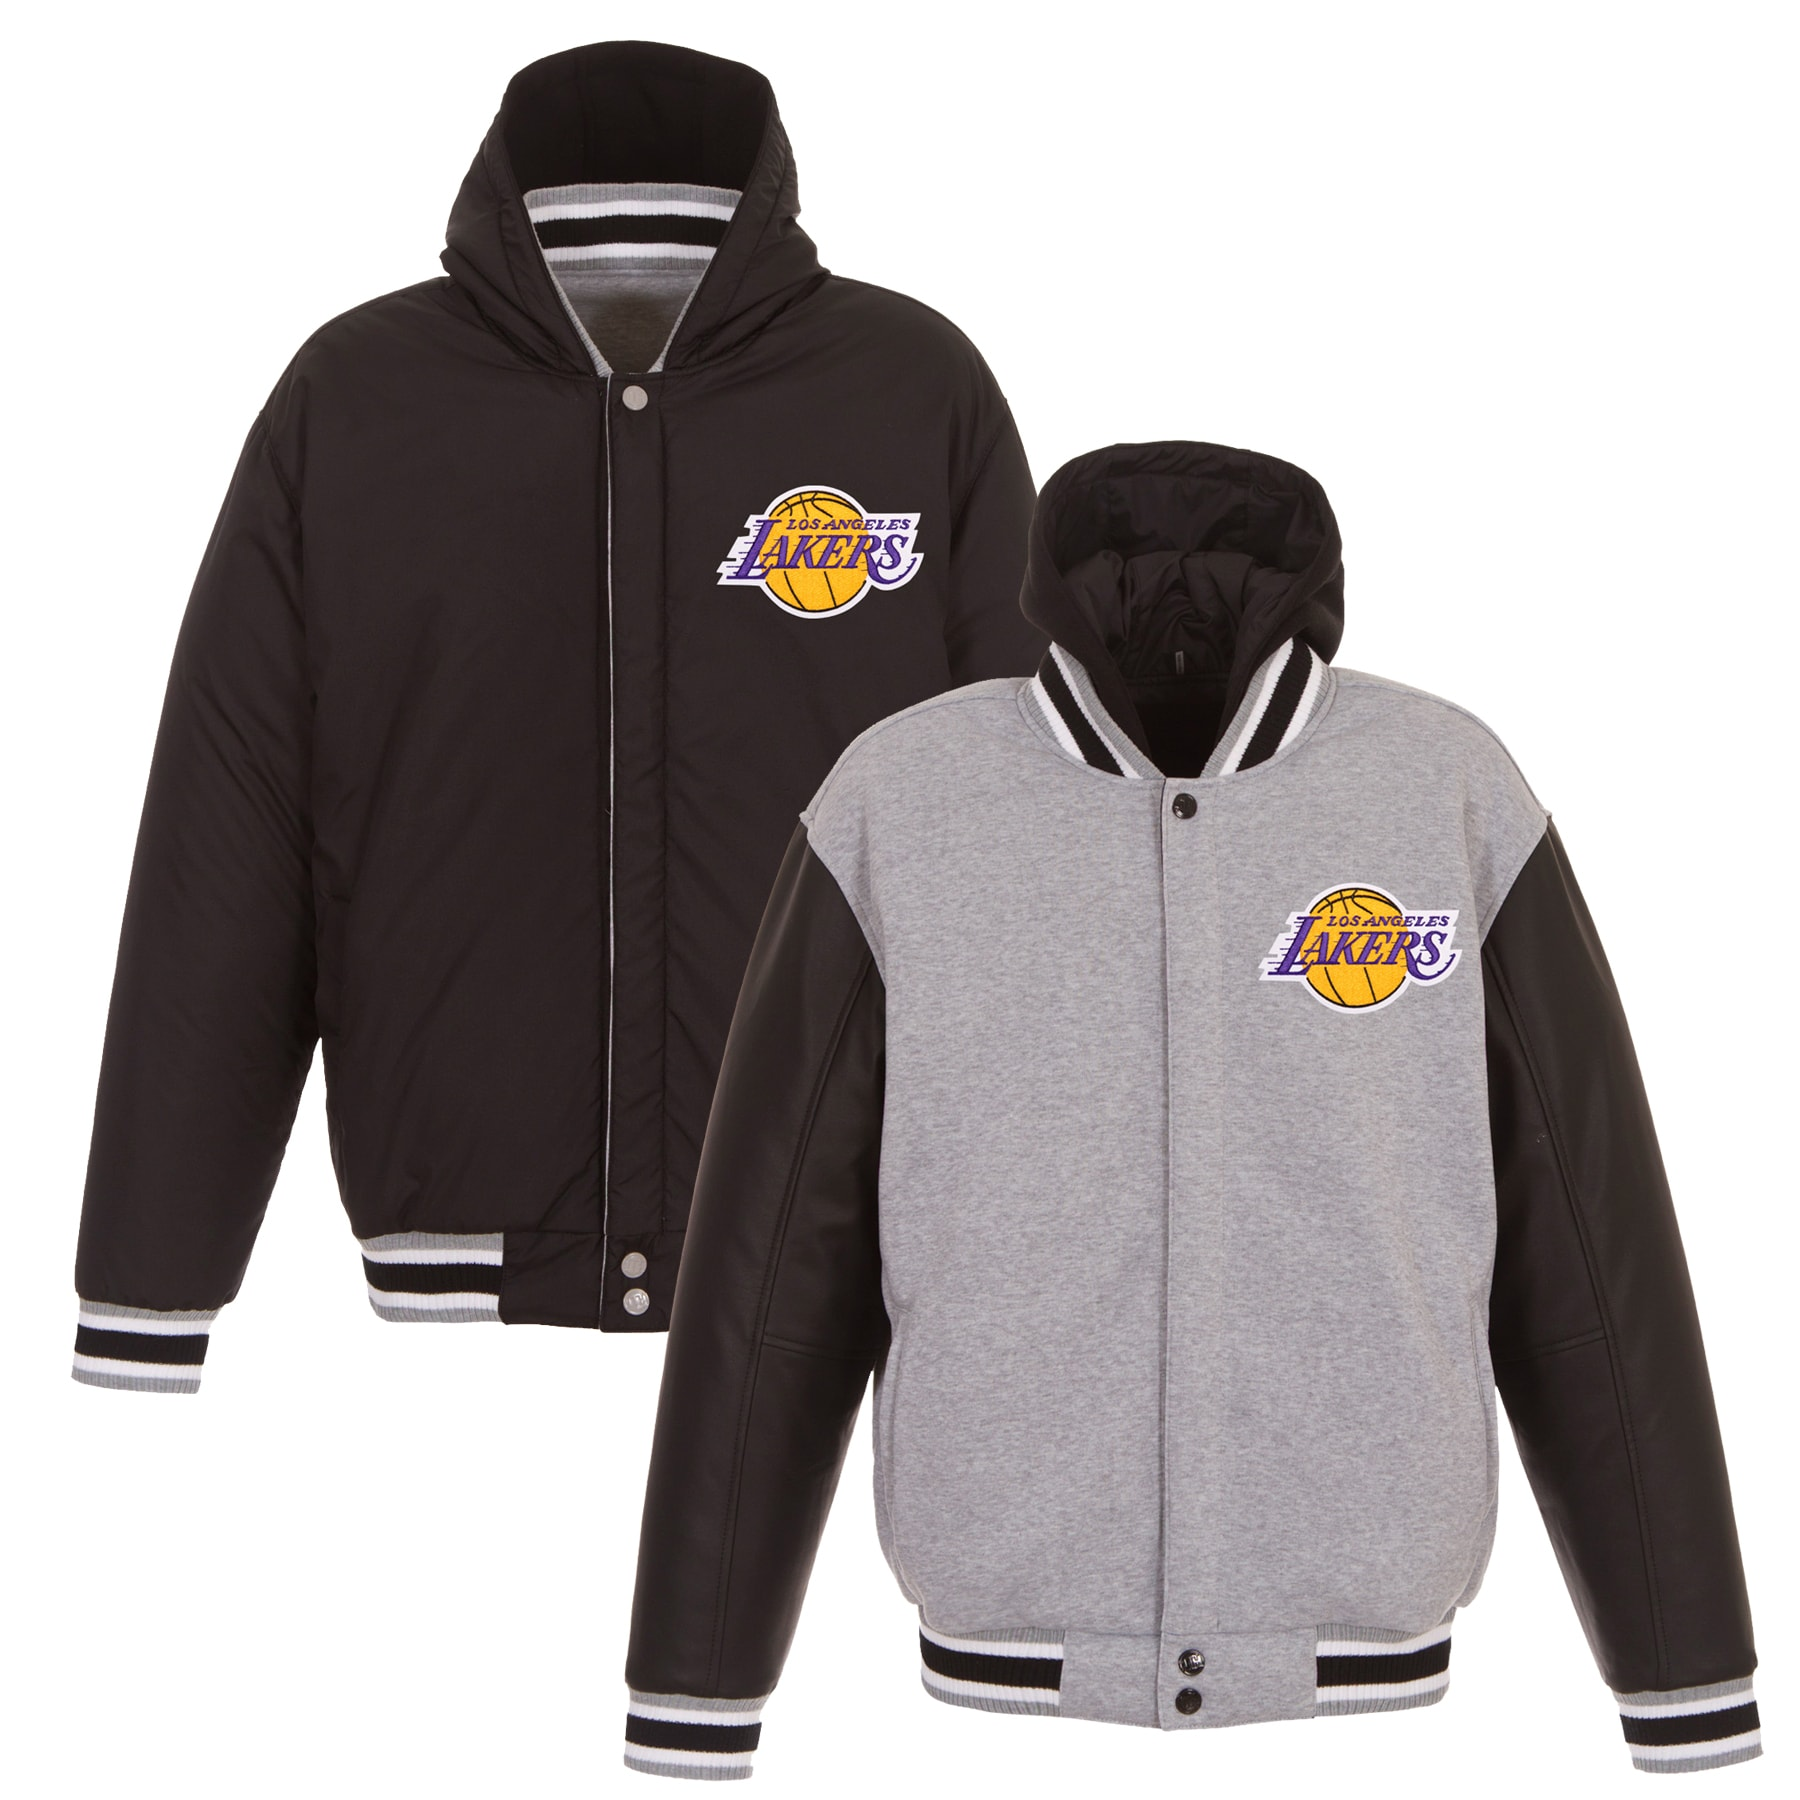 Los Angeles Lakers JH Design Embroidered Logo Reversible Hooded Fleece Full-Snap Jacket - Gray/Black